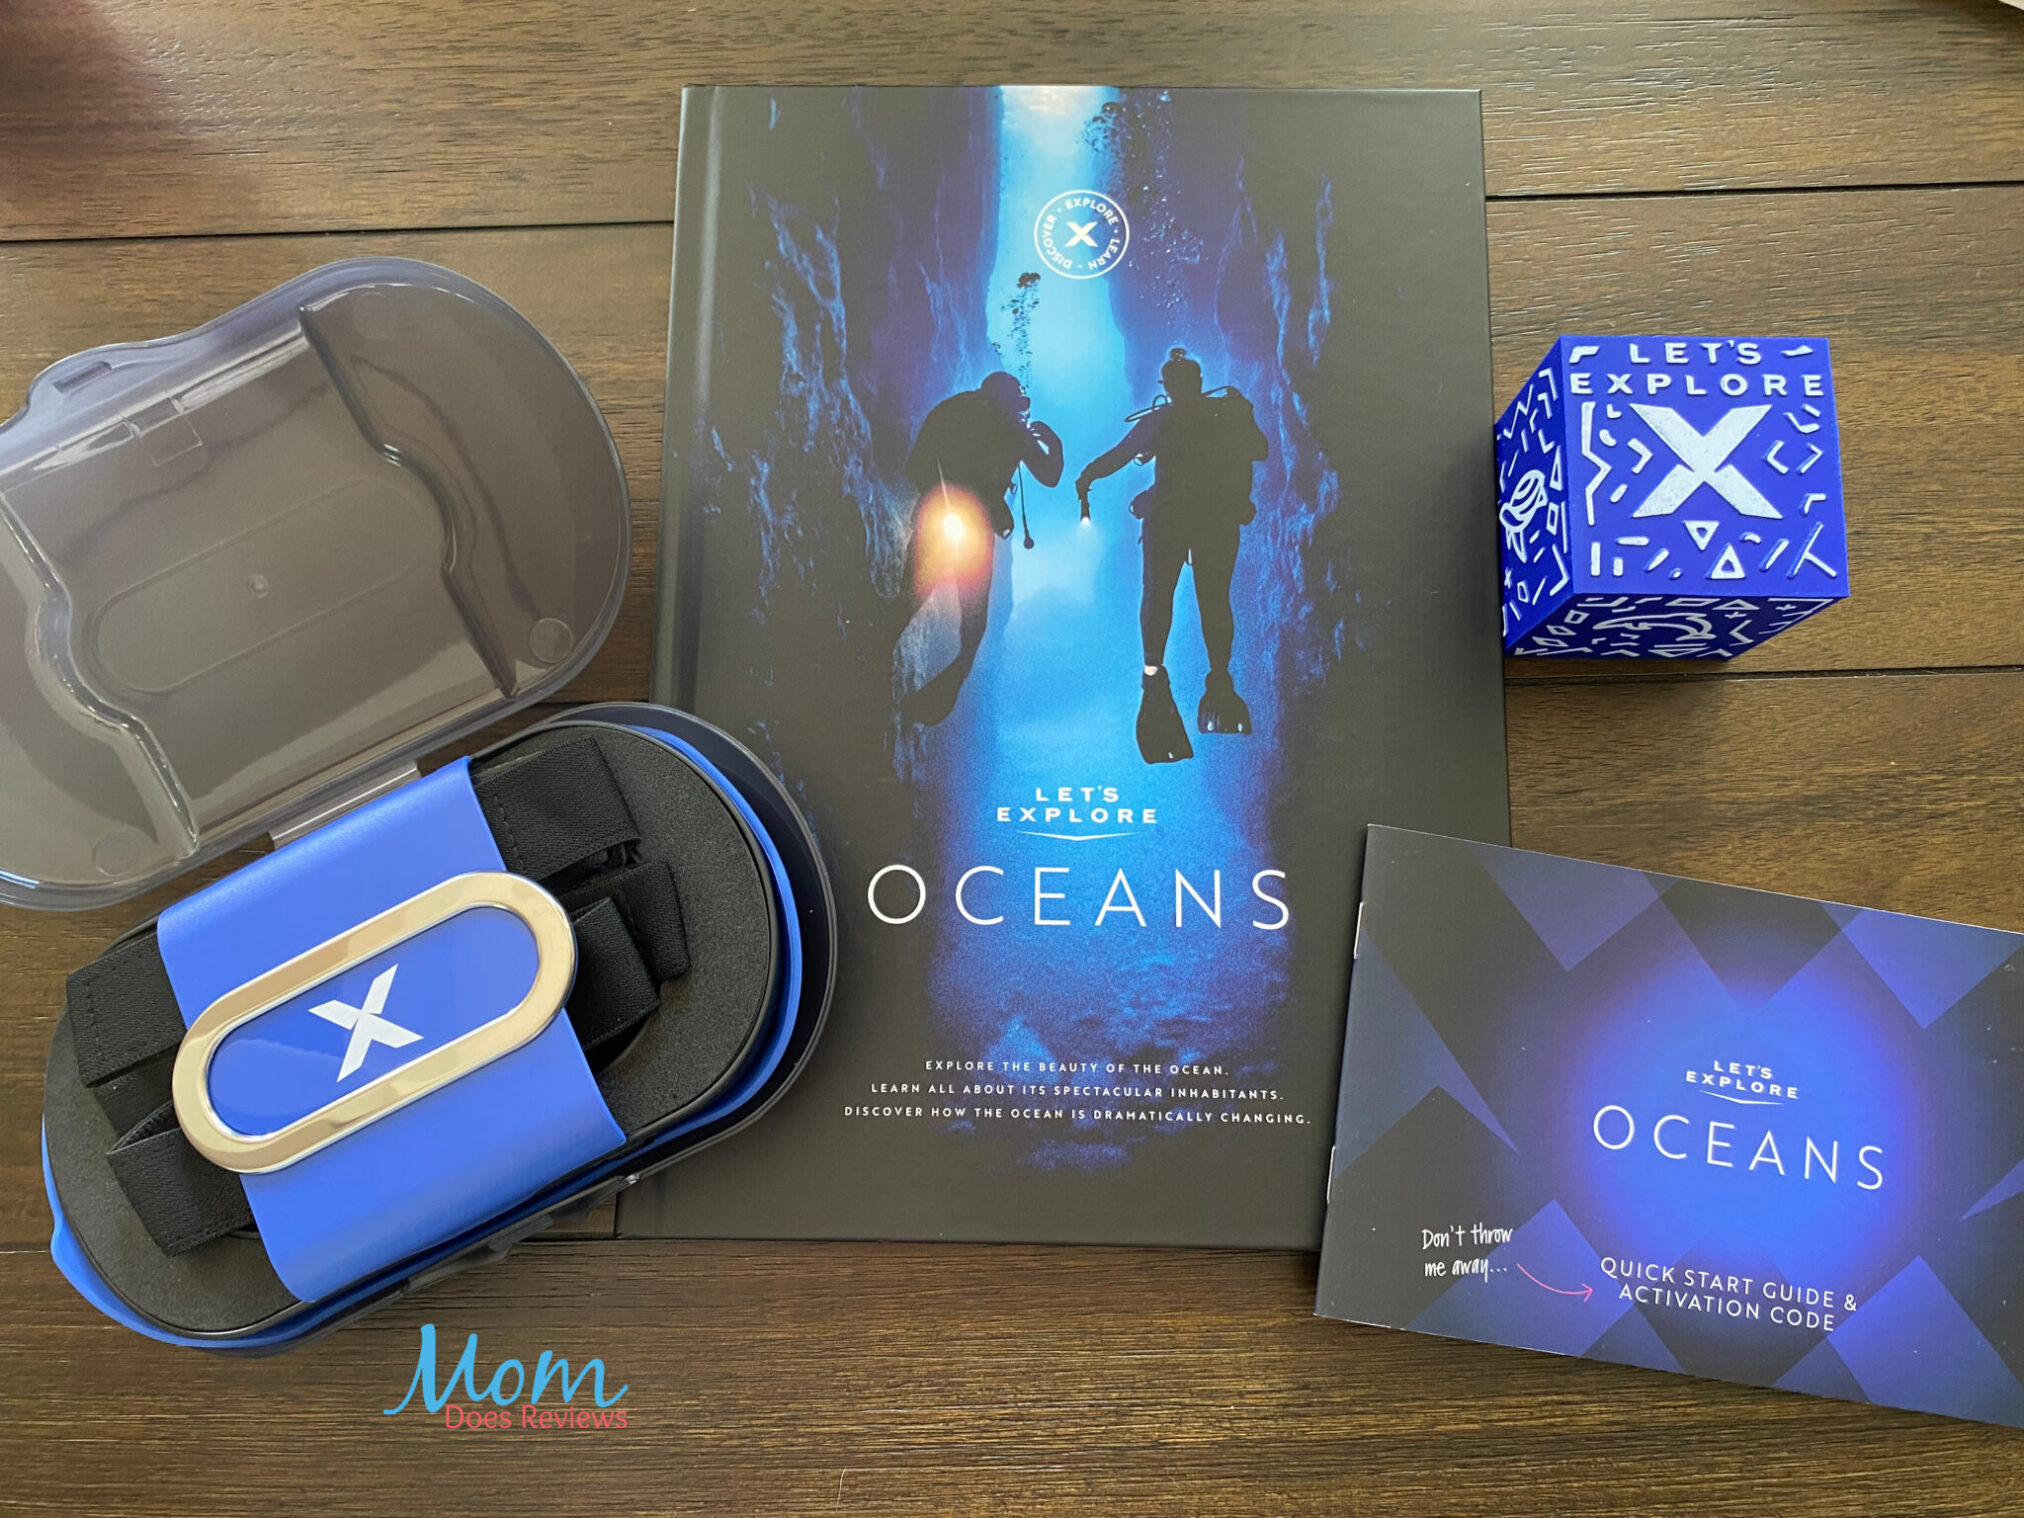 Let's Explore Oceans kit